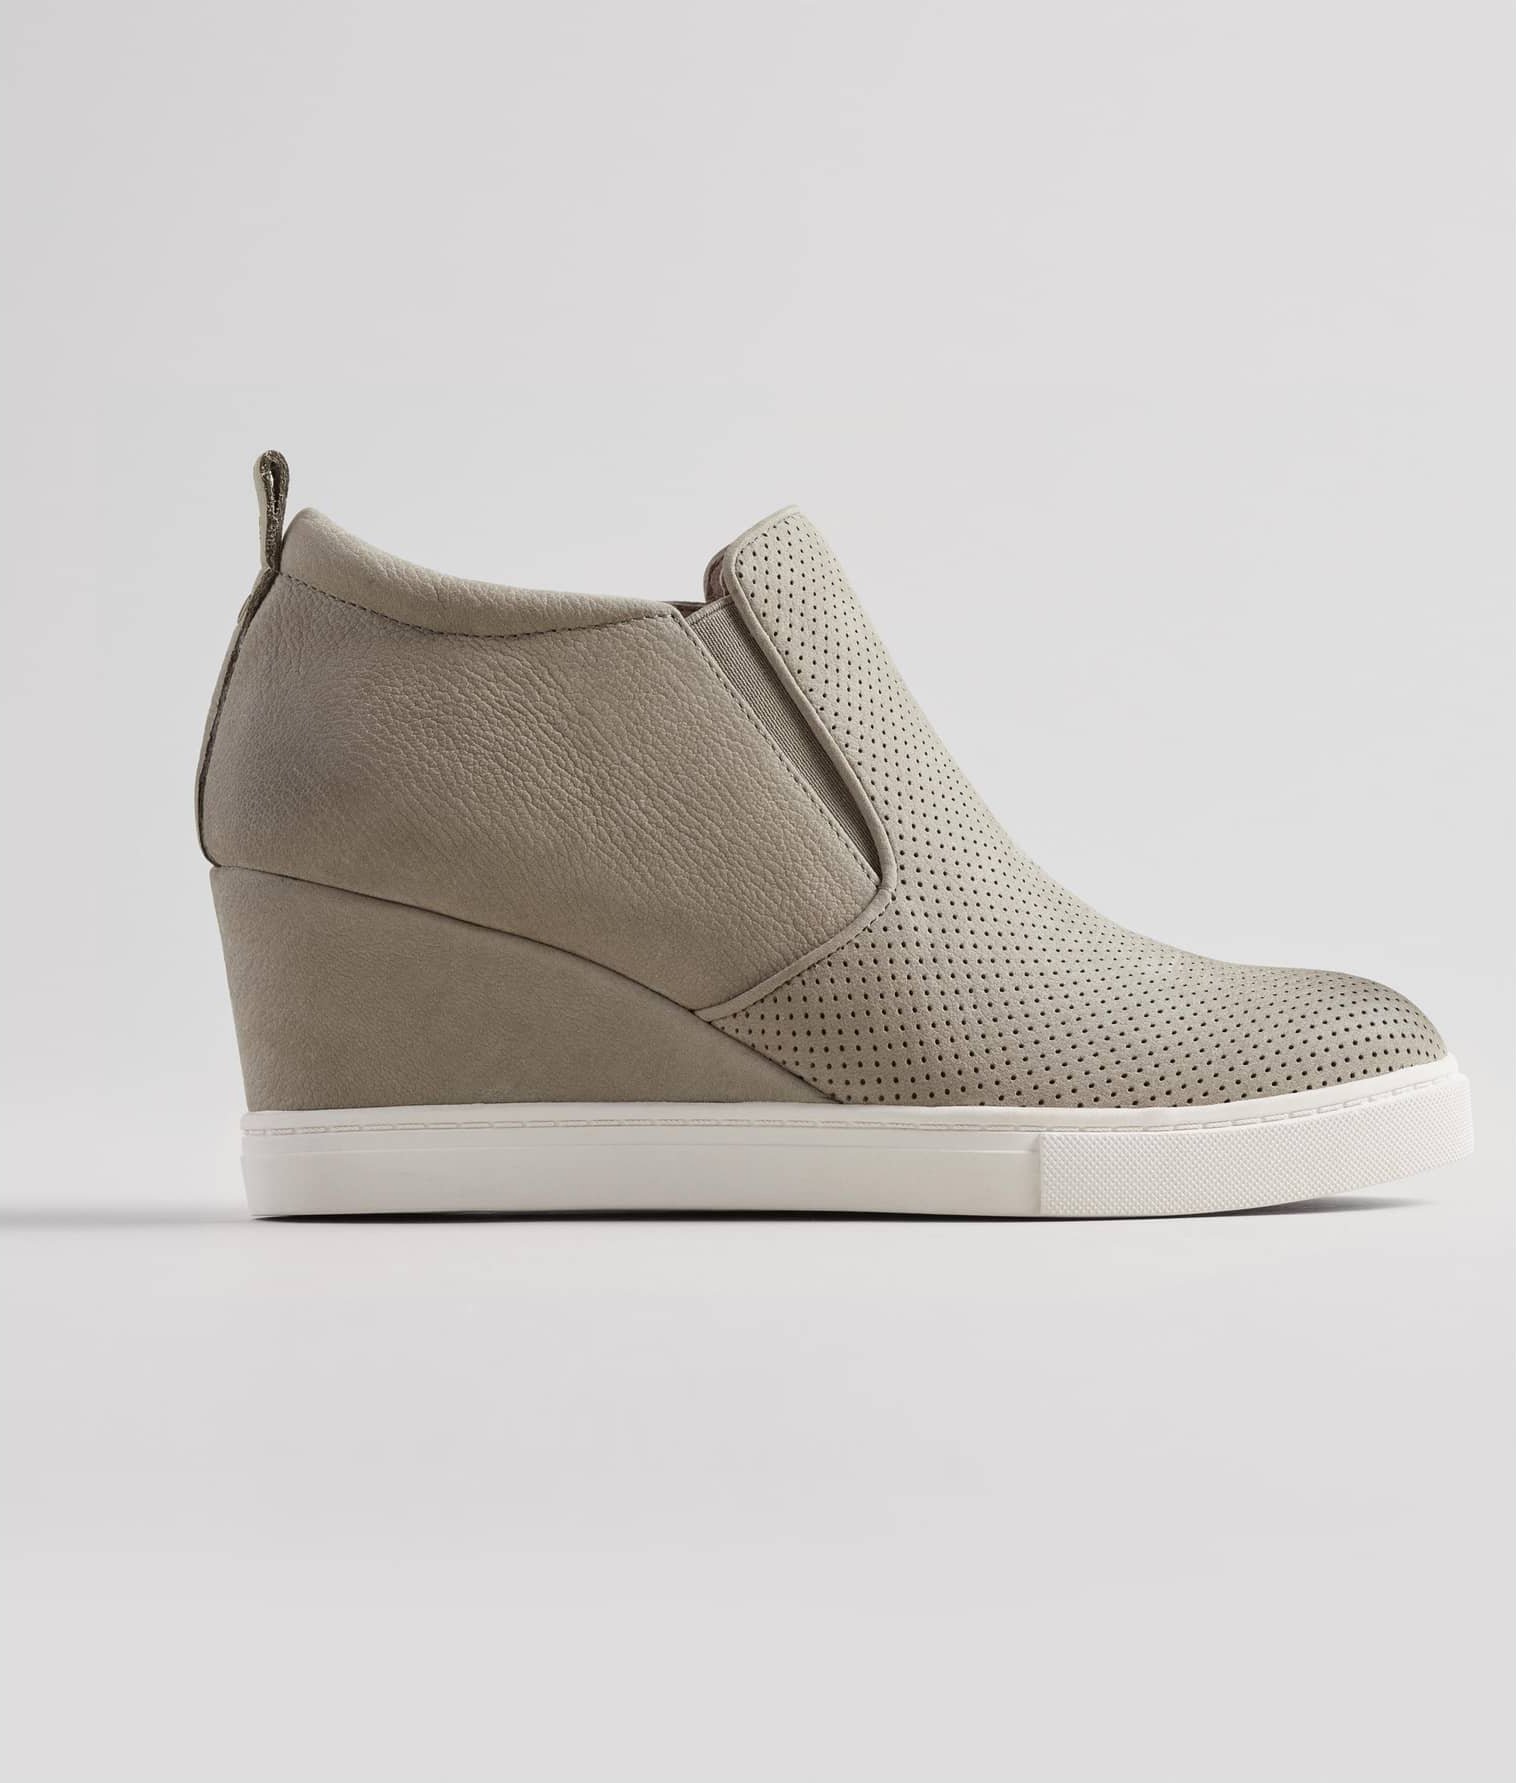 Shop These Sporty Wedge Sneakers at